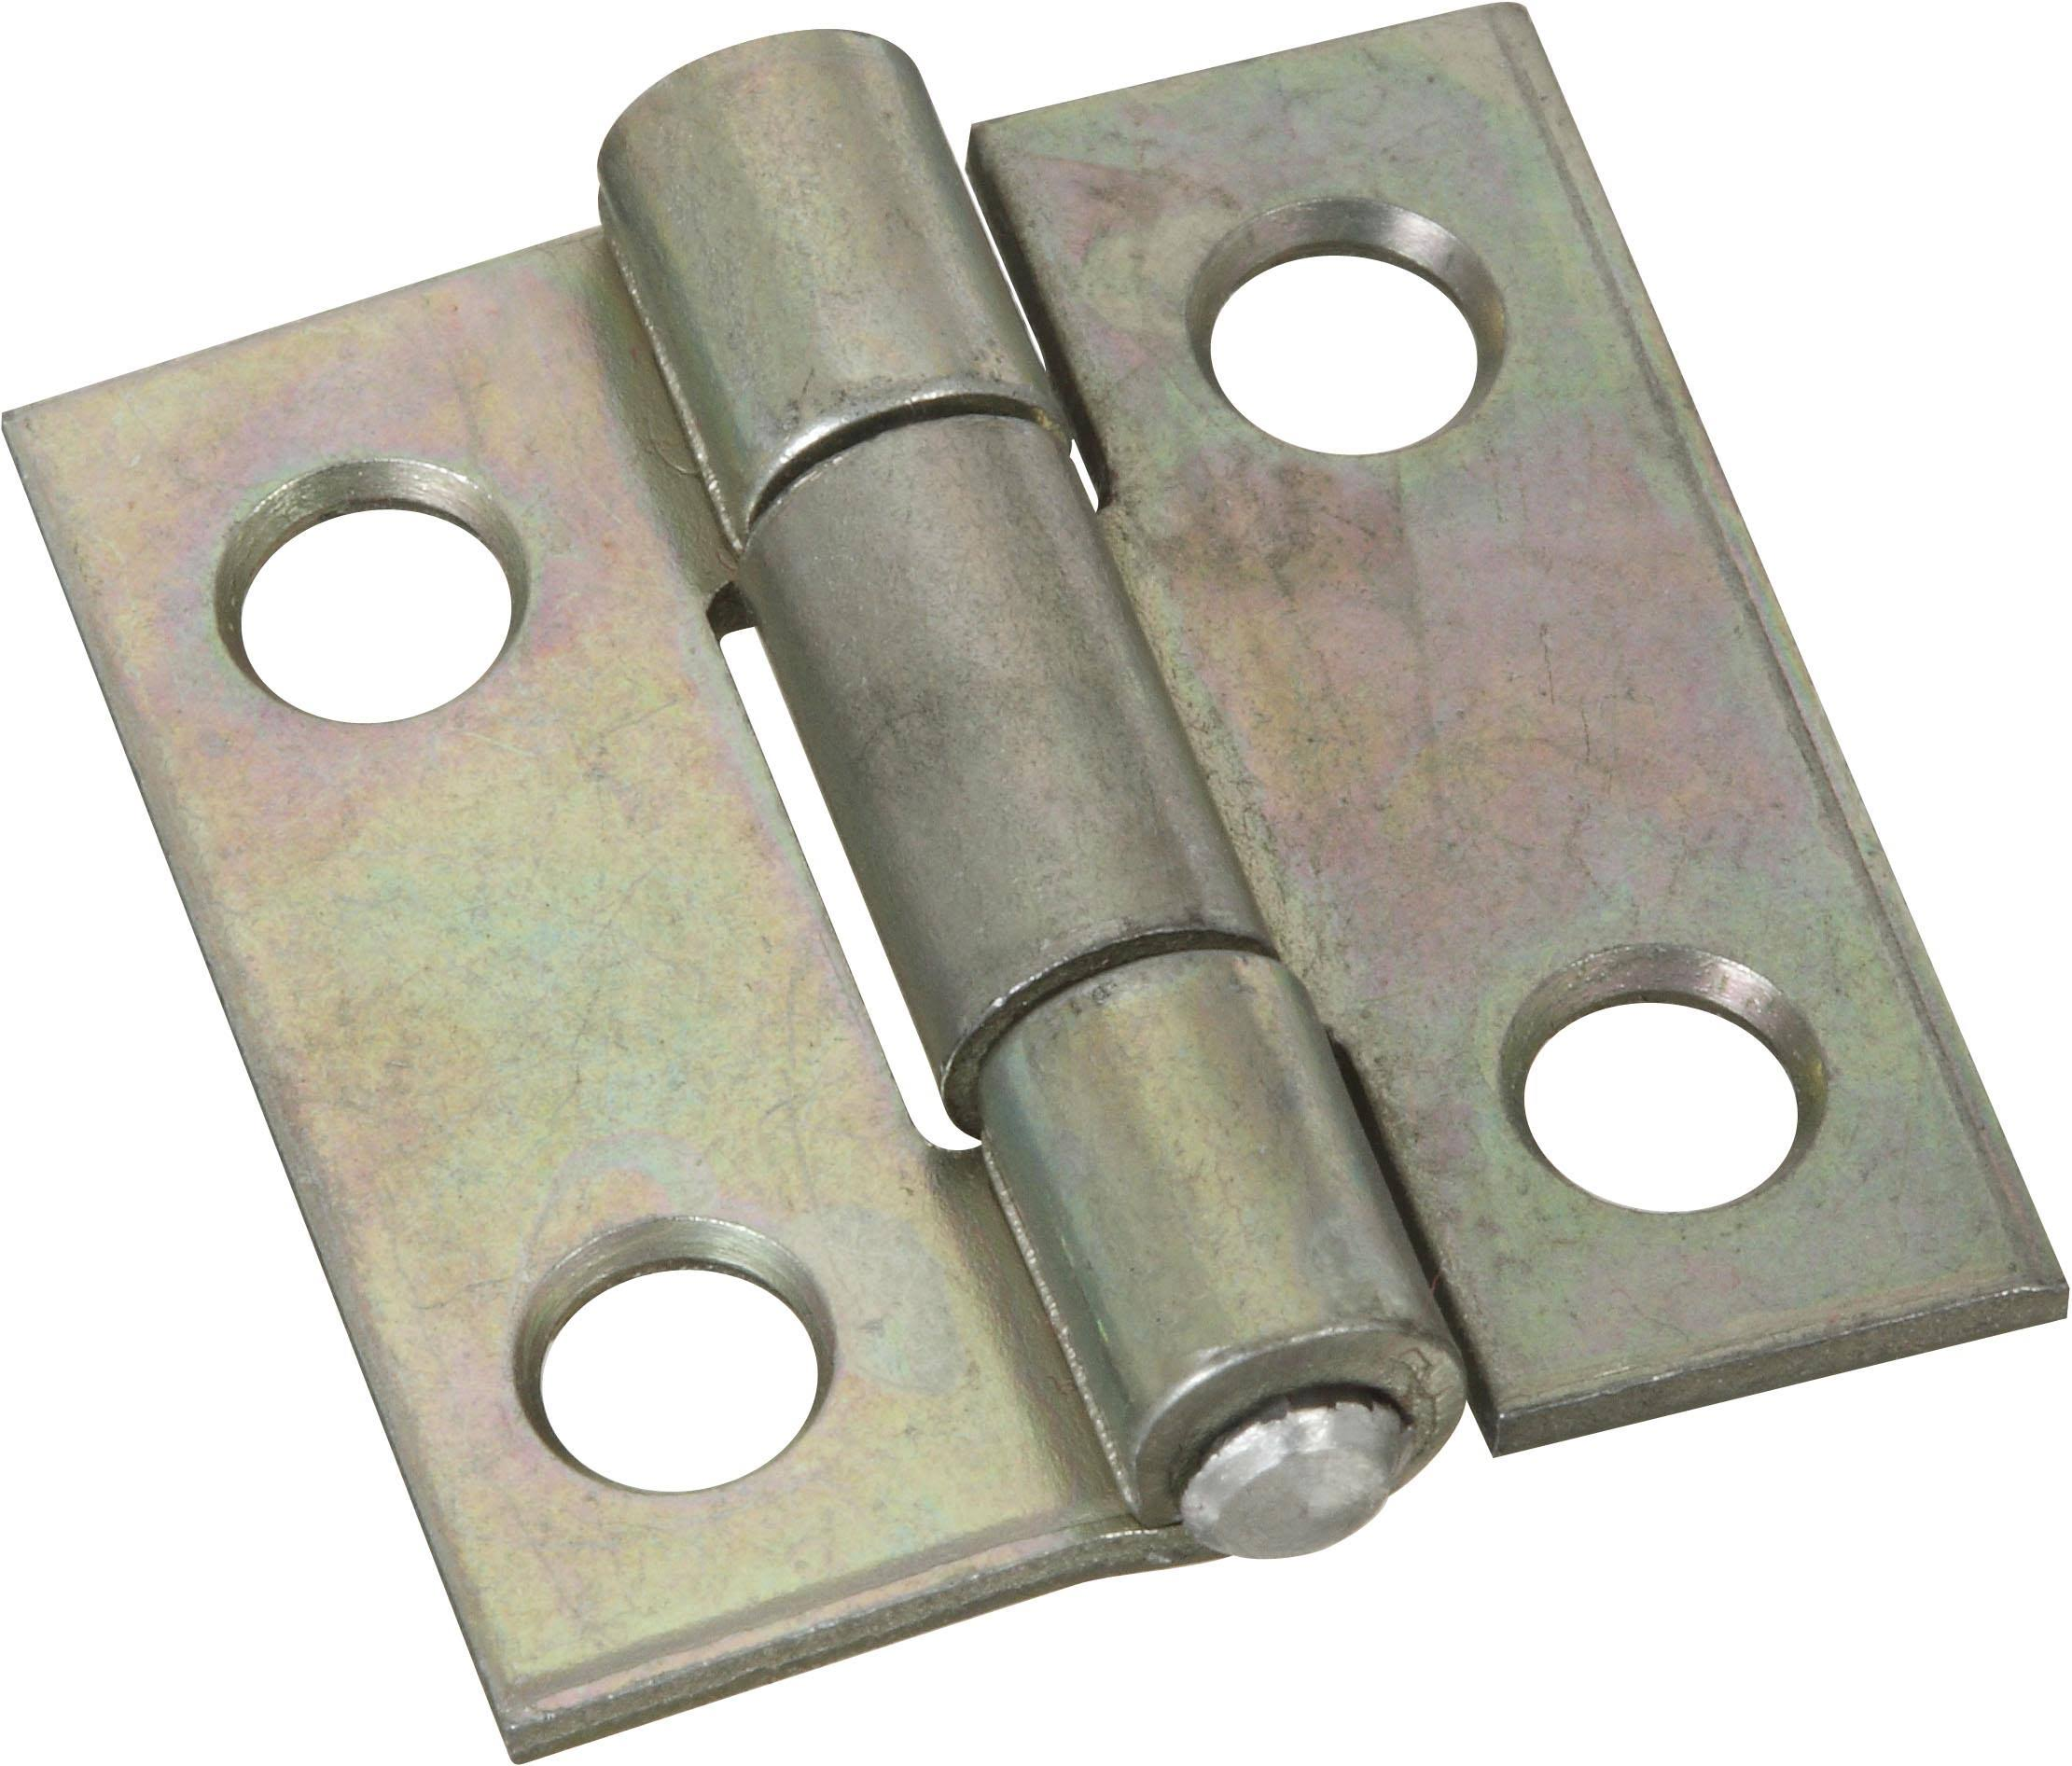 National Hardware Non-Removable Pin Hinge - Zinc Plated, 1""